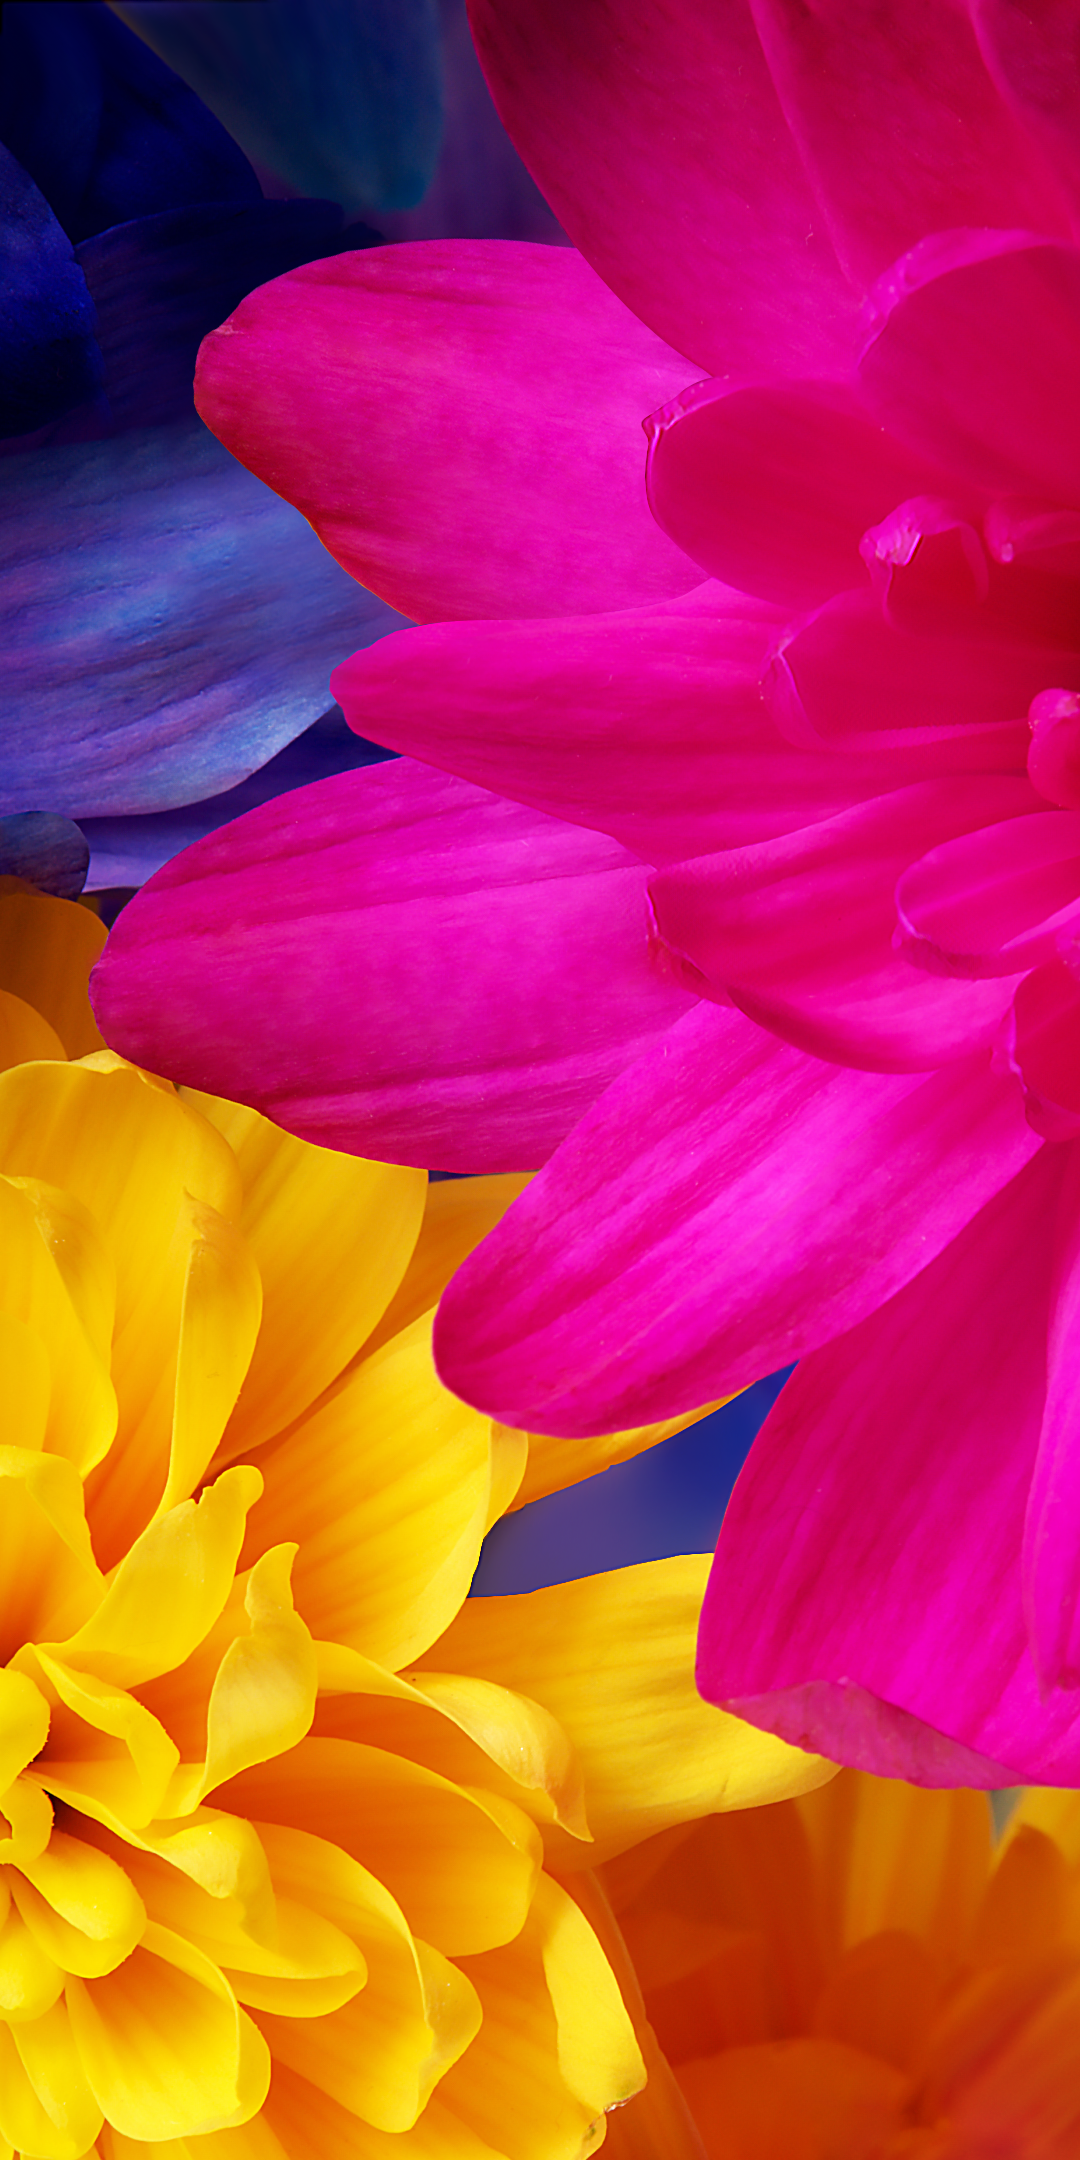 Pin By Kaiyan On Sharp Aquos S3 Stock Flower Phone Wallpaper Beautiful Flowers Wallpapers Photography Wallpaper